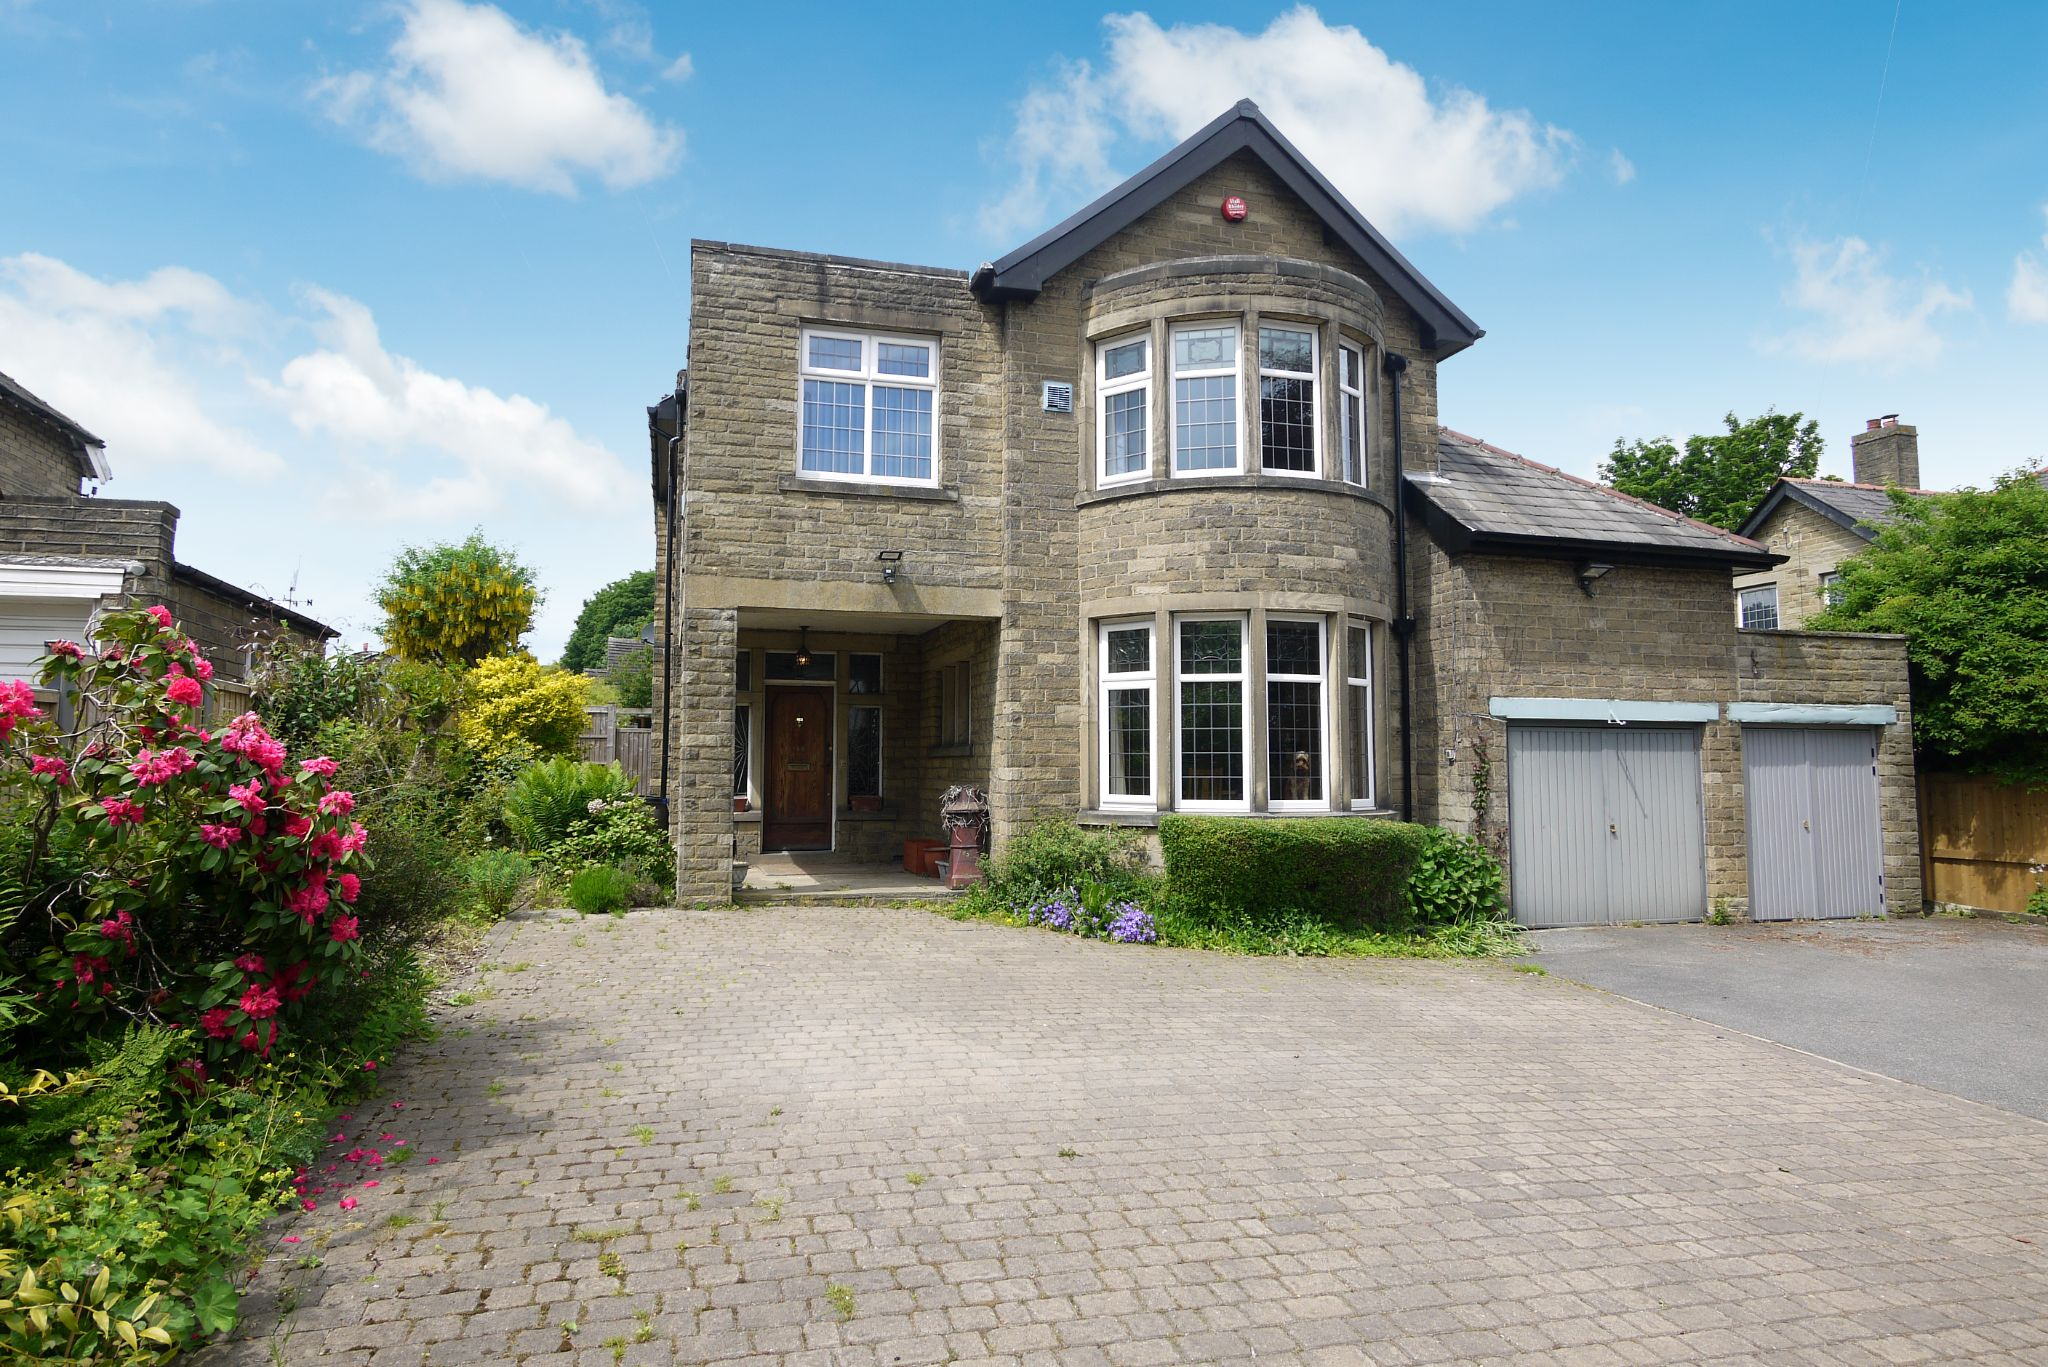 4 bedroom detached house SSTC in Brighouse - Photograph 3.